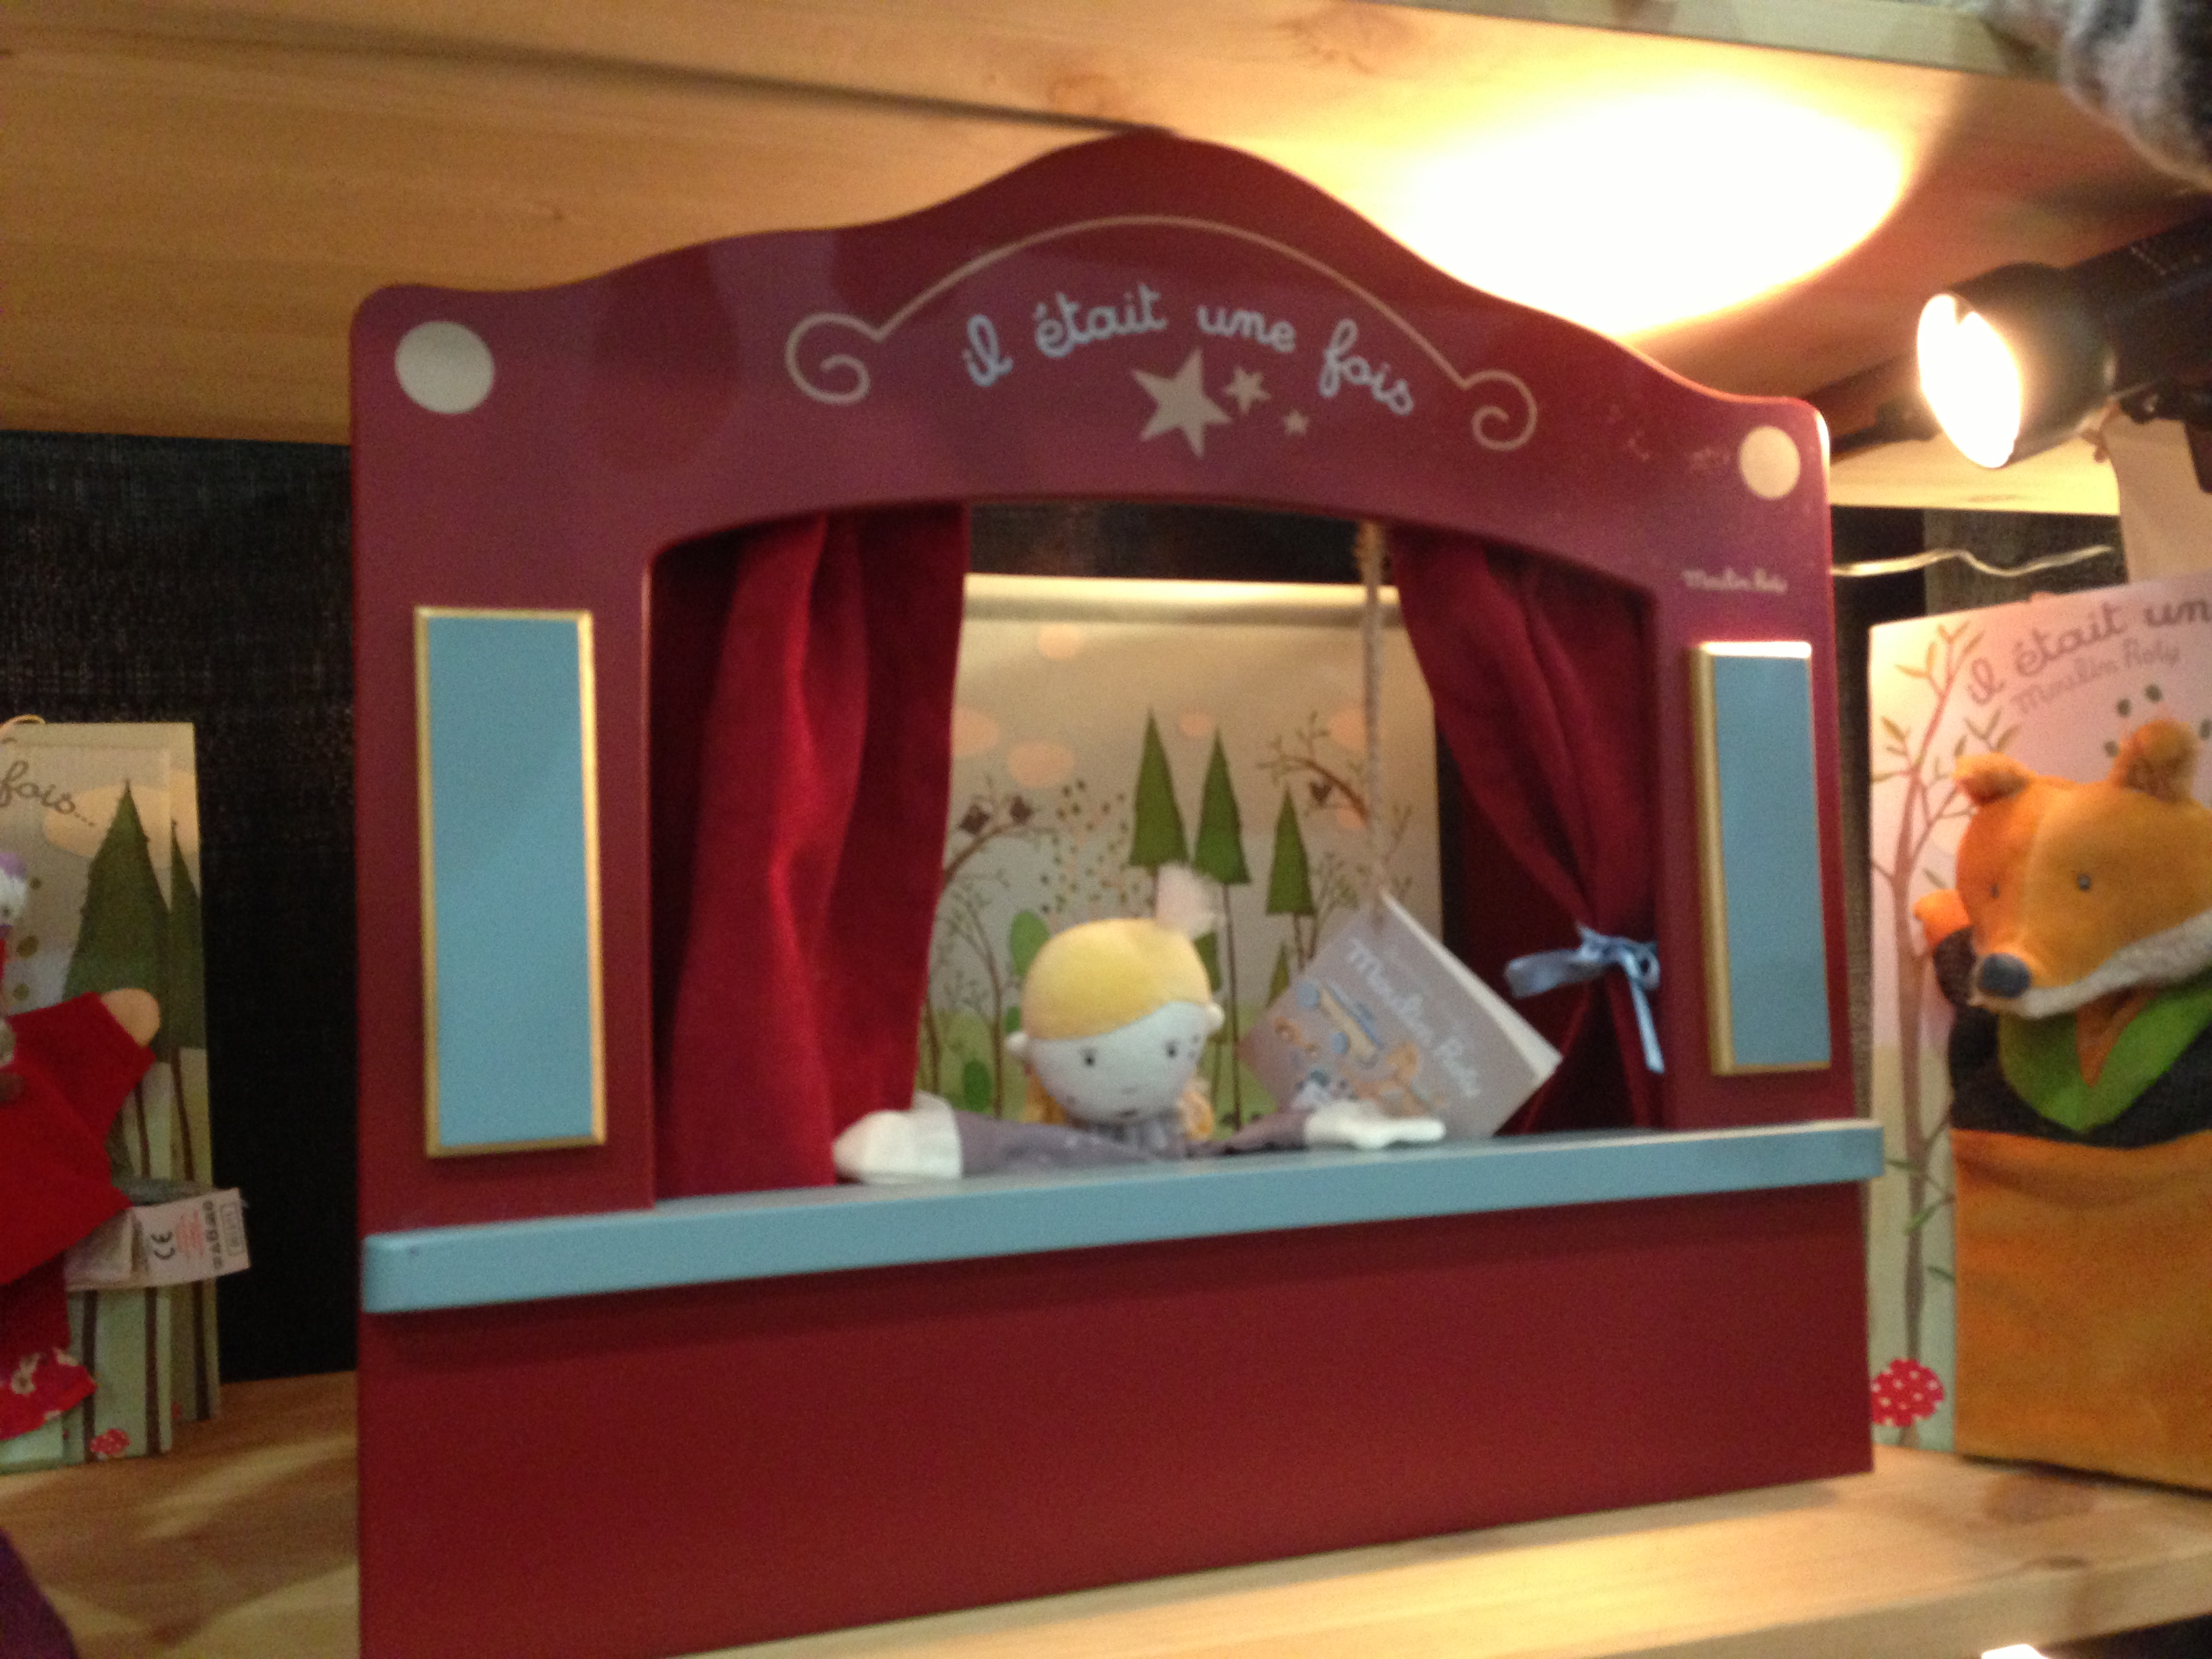 An old-fashioned finger-puppet theater from Moulin Roty!